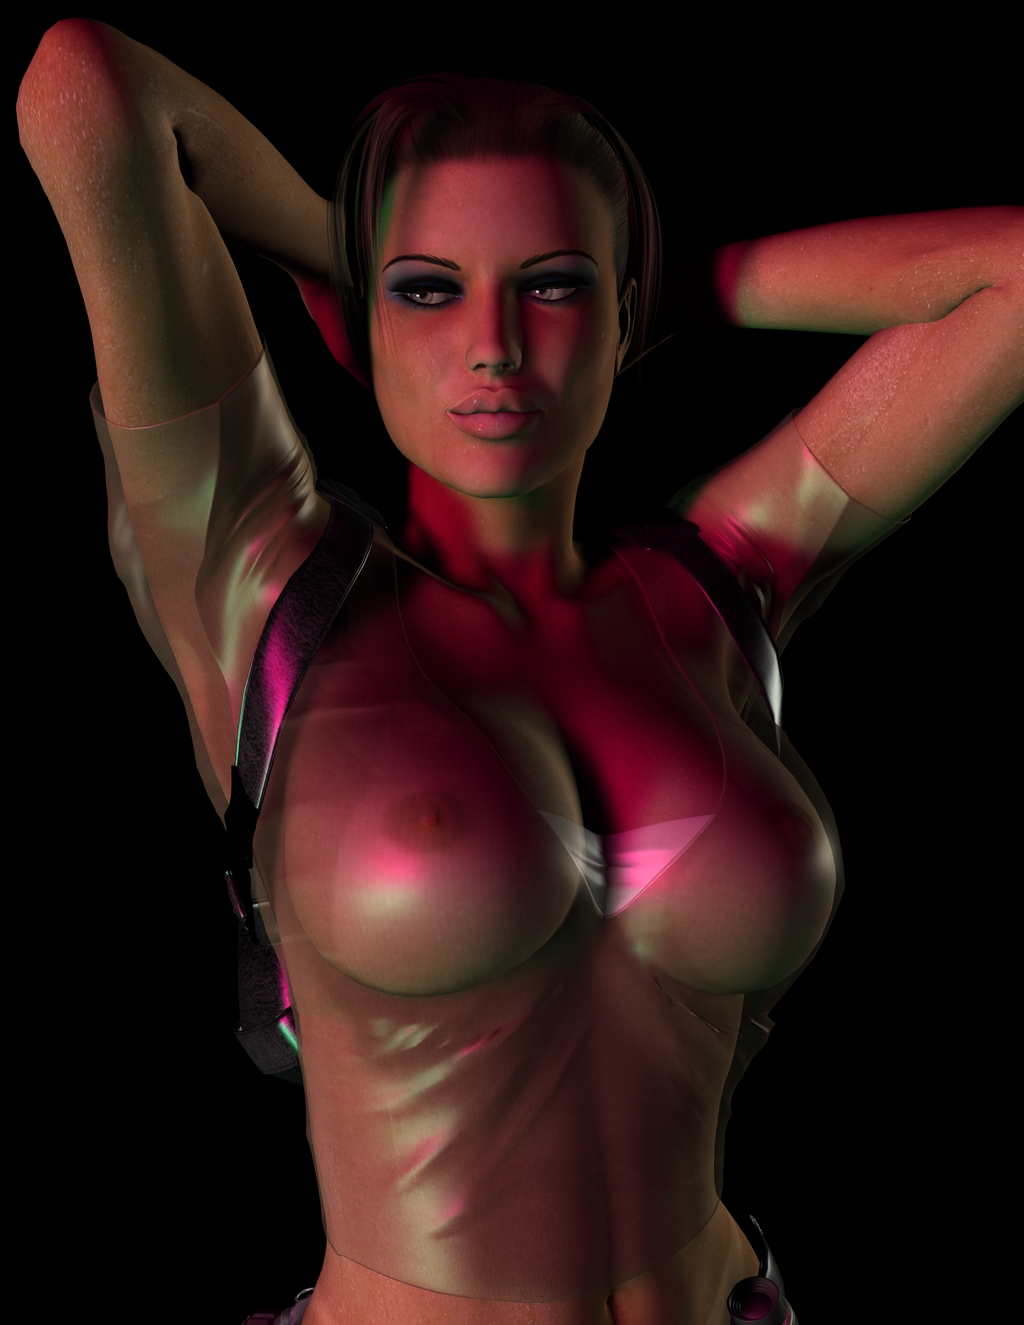 Video porno hentai tomb raider alien sexy images